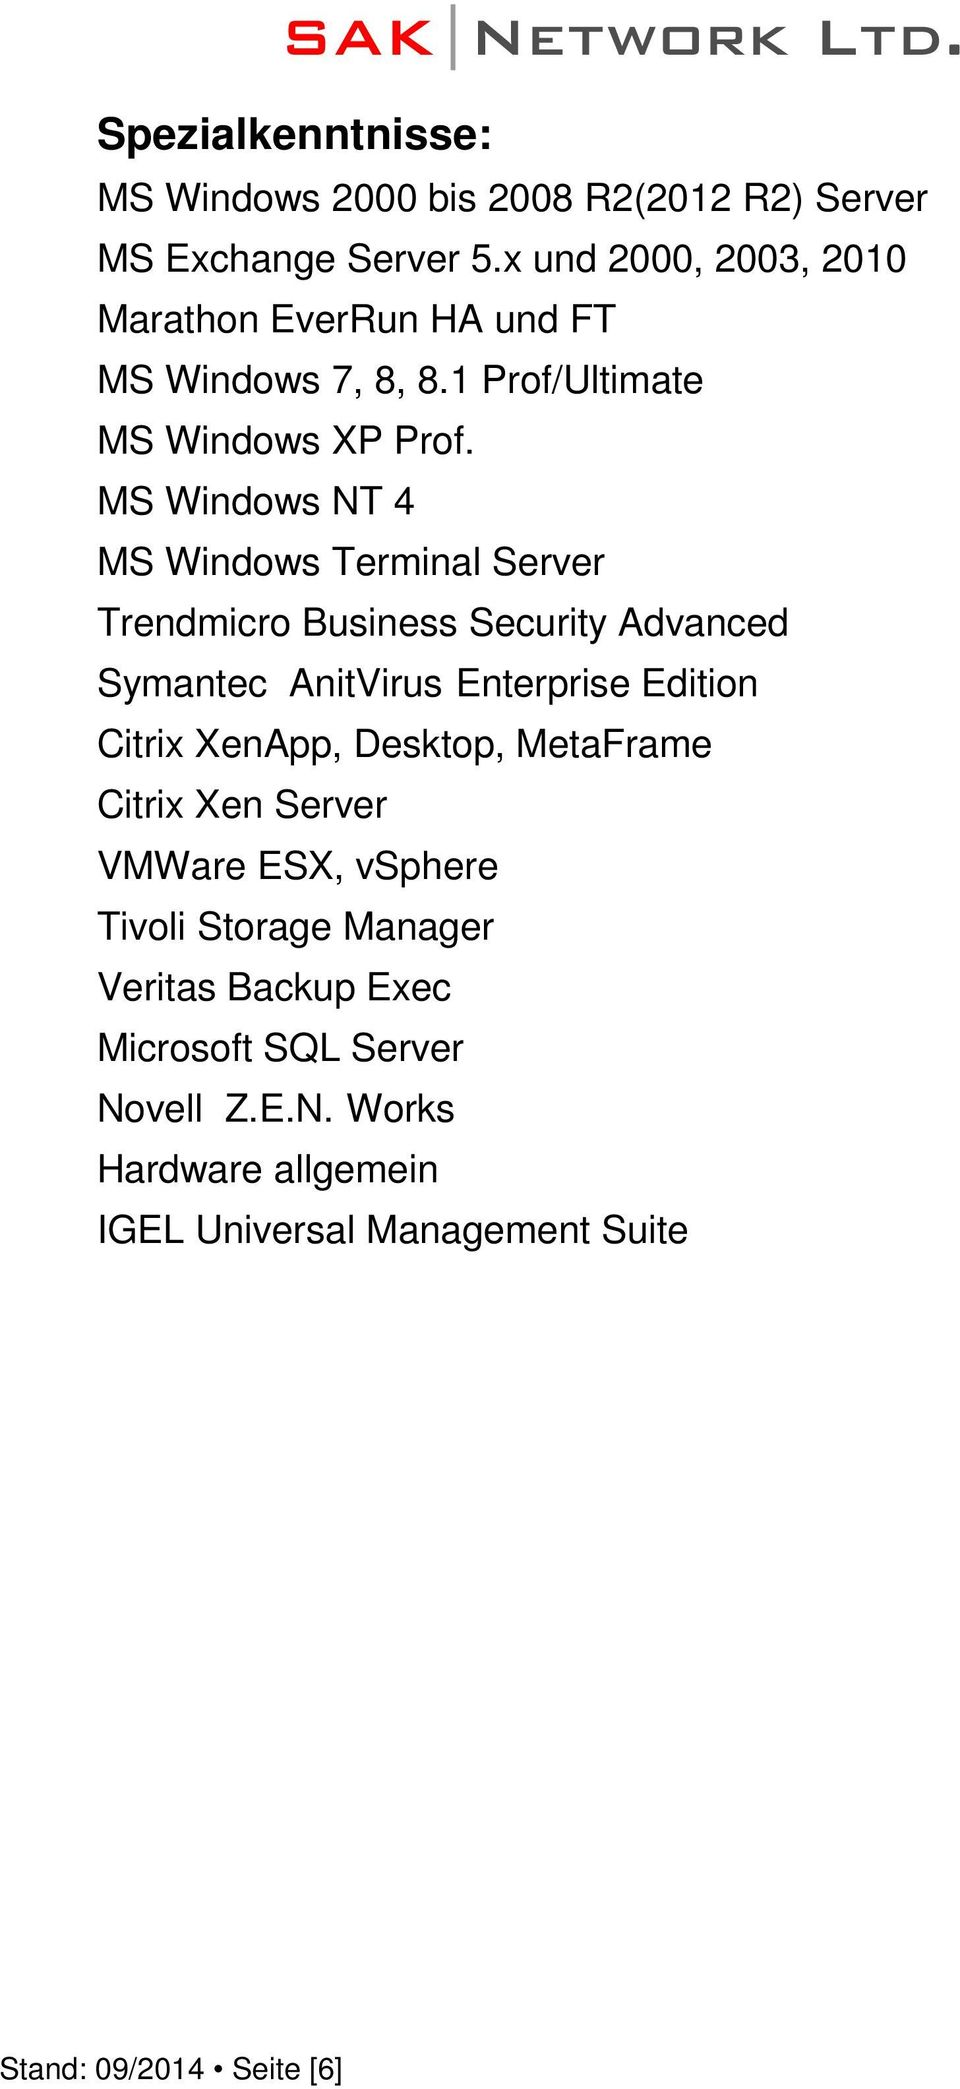 MS Windows NT 4 MS Windows Terminal Server Trendmicro Business Security Advanced Symantec AnitVirus Enterprise Edition Citrix XenApp,